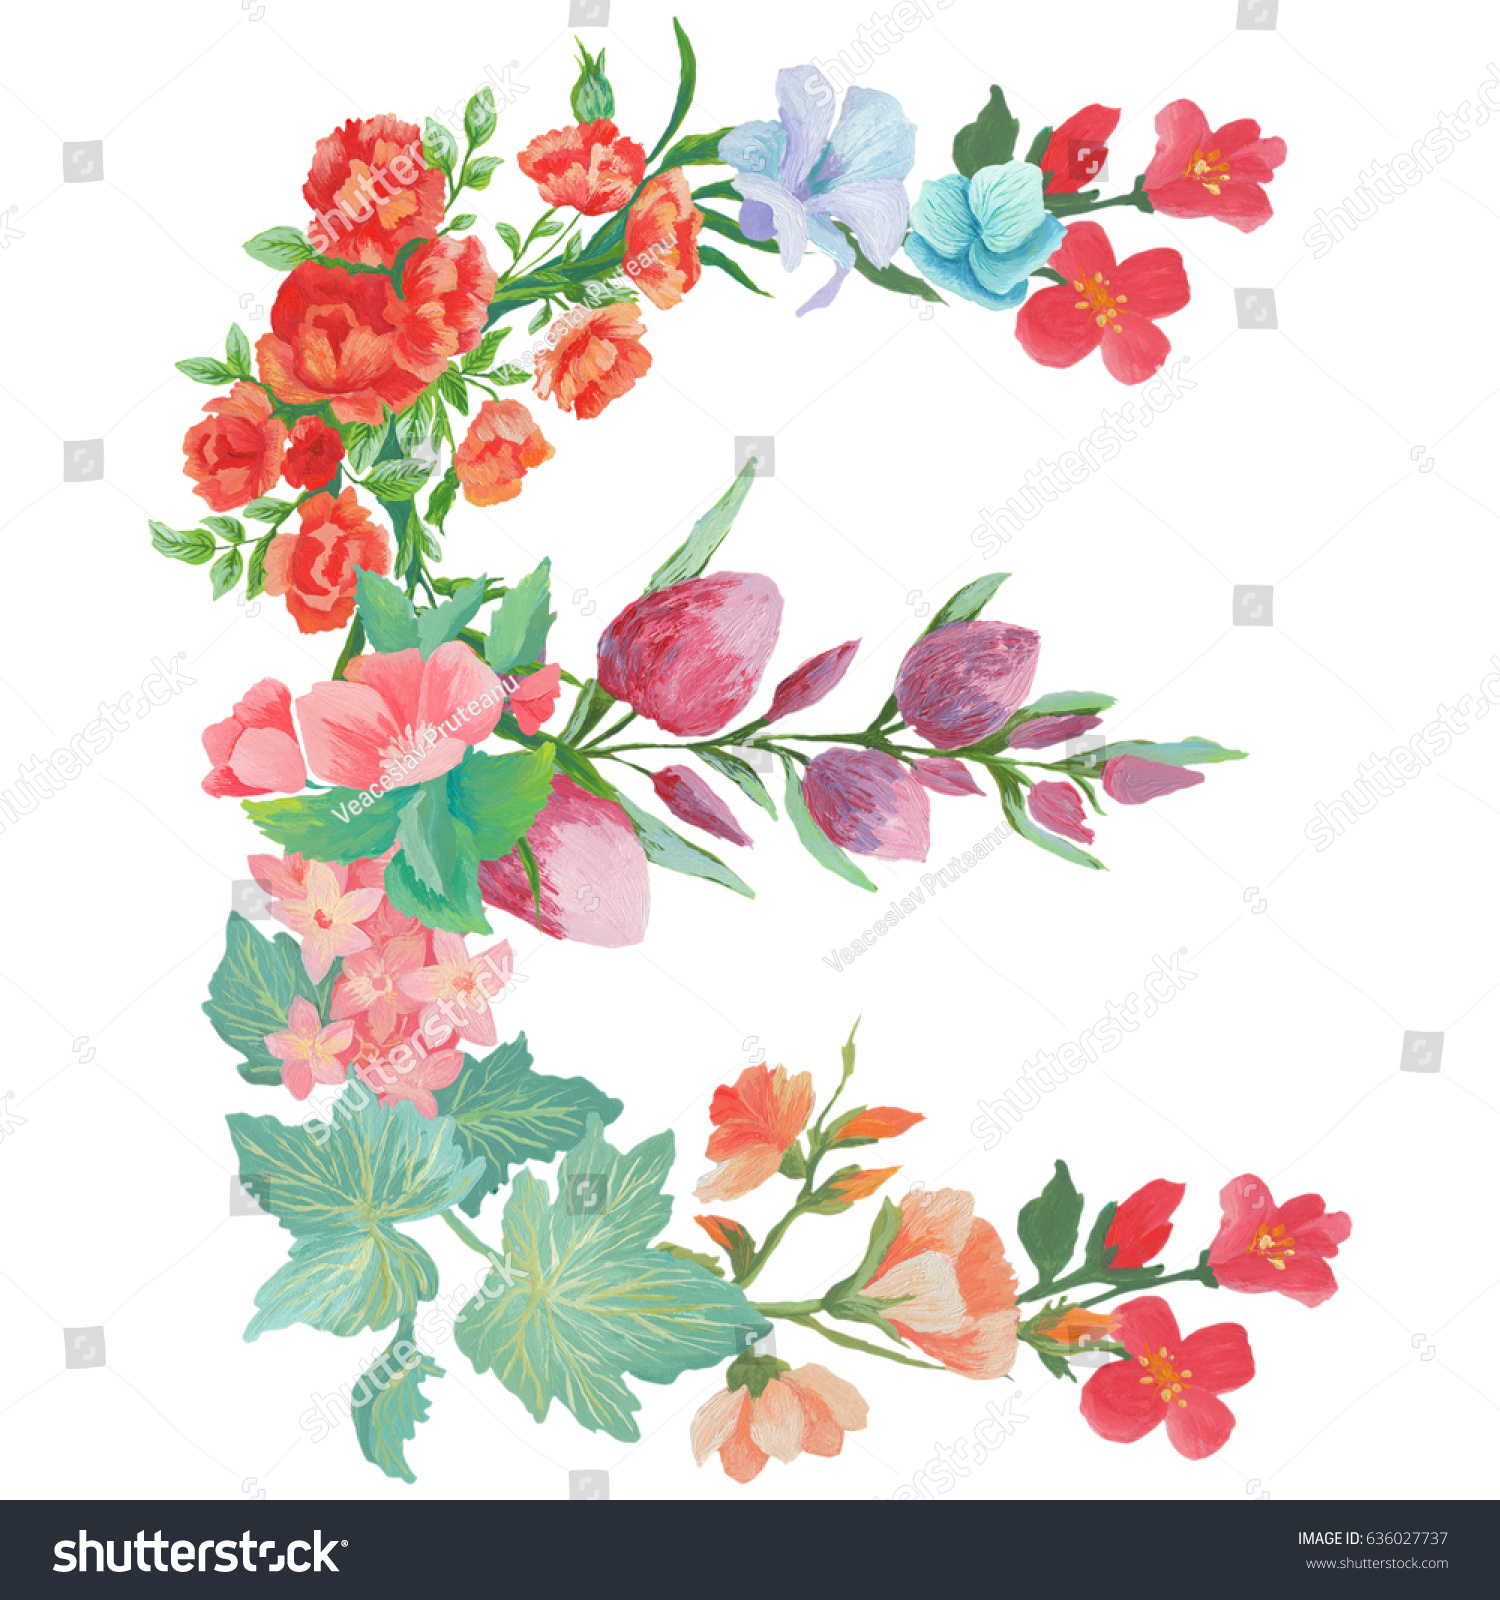 Capital Letter E Watercolor Flowers Isolated Stock Illustration